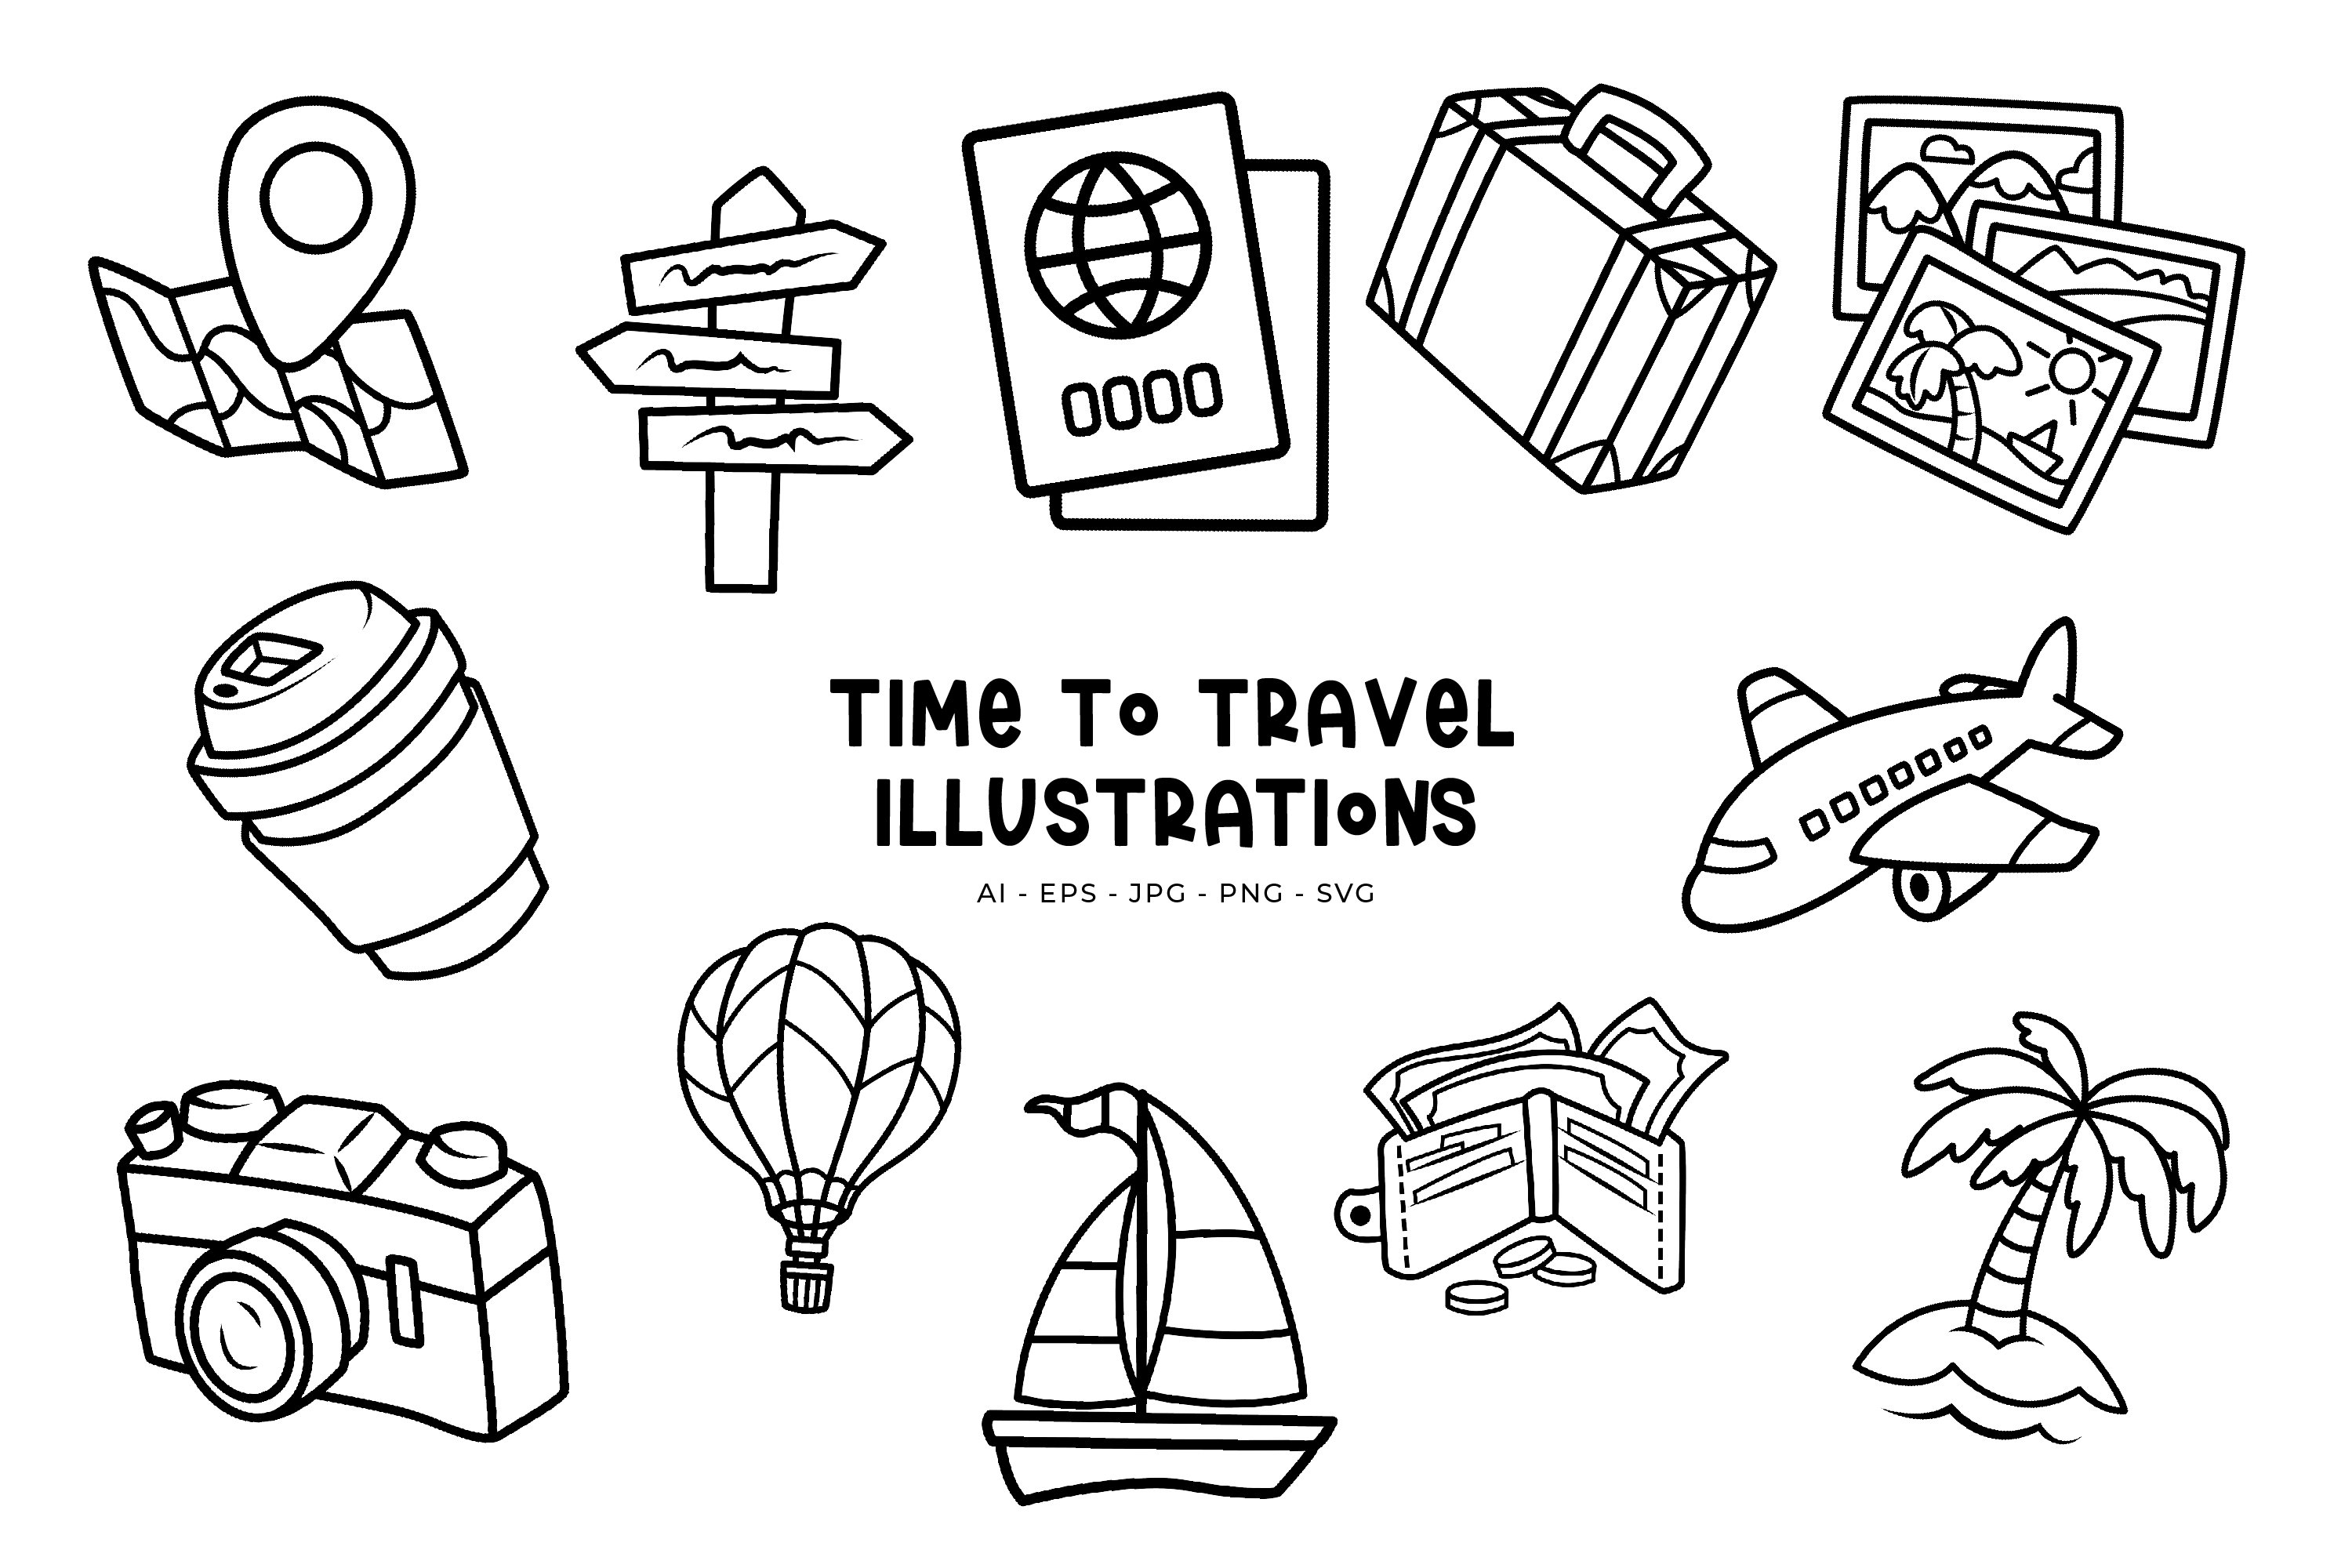 Time To Travel illustrations example image 1